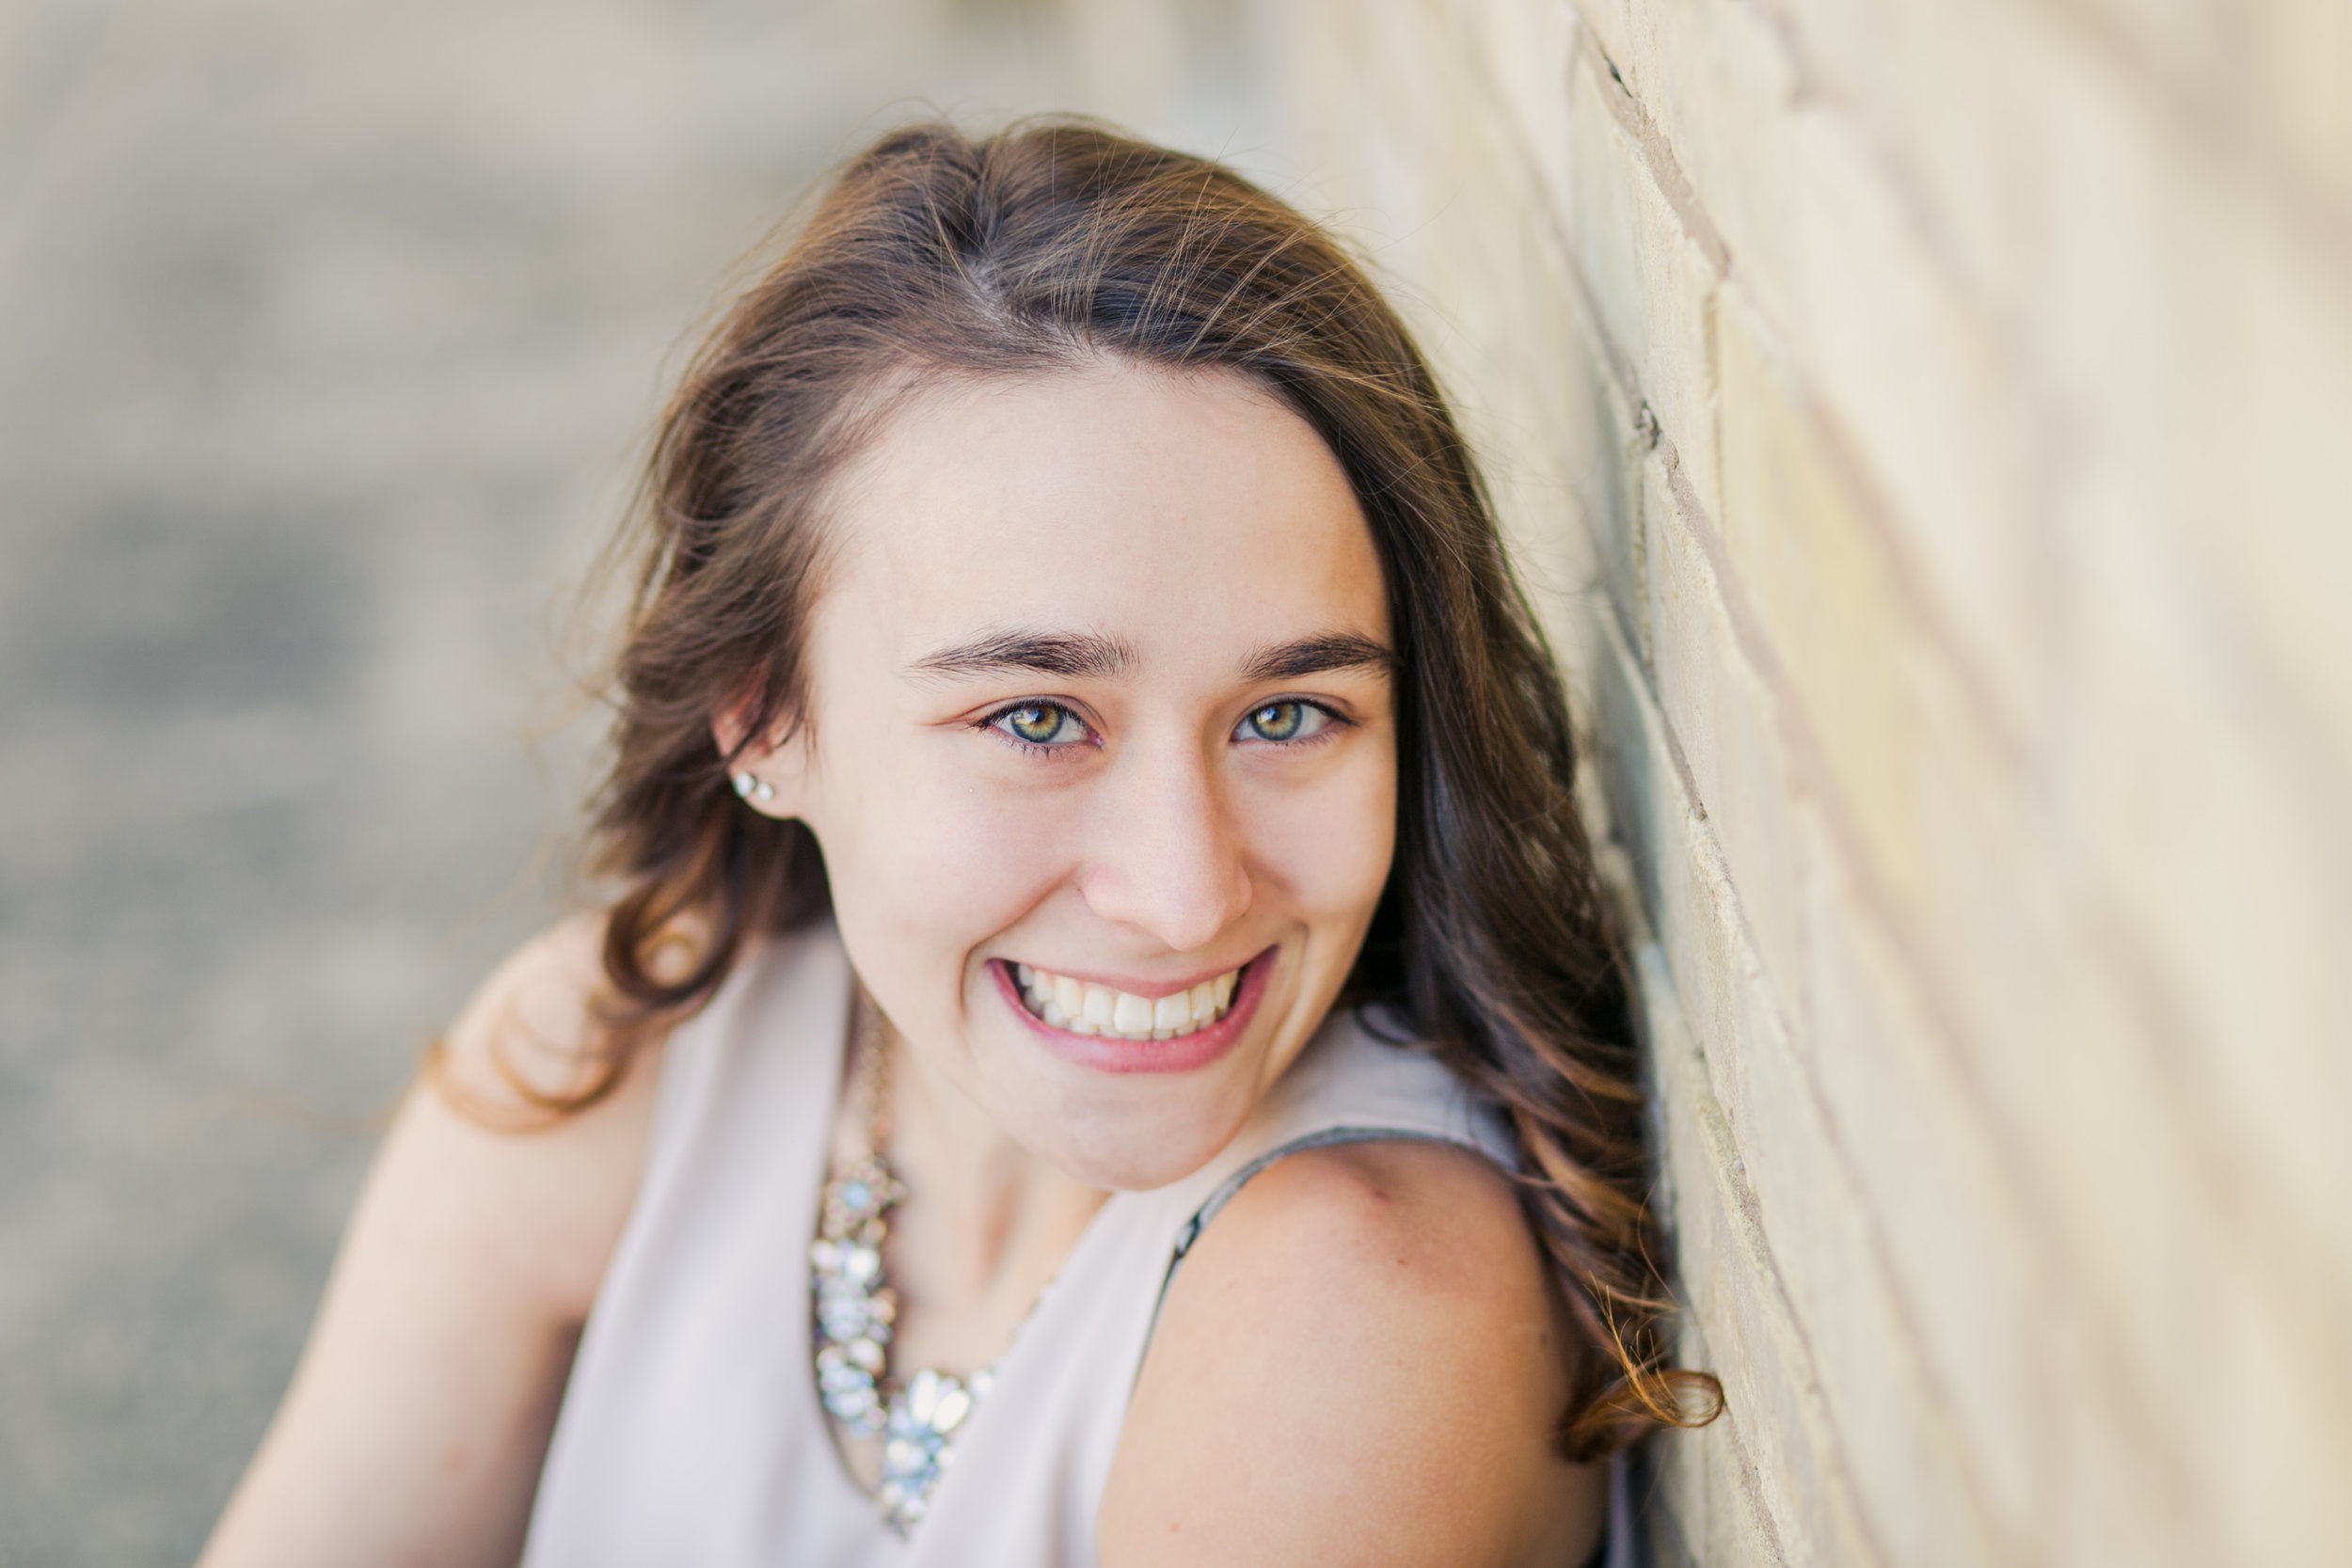 Senior Pictures at the University of Notre Dame, Brick Wall, Face Only